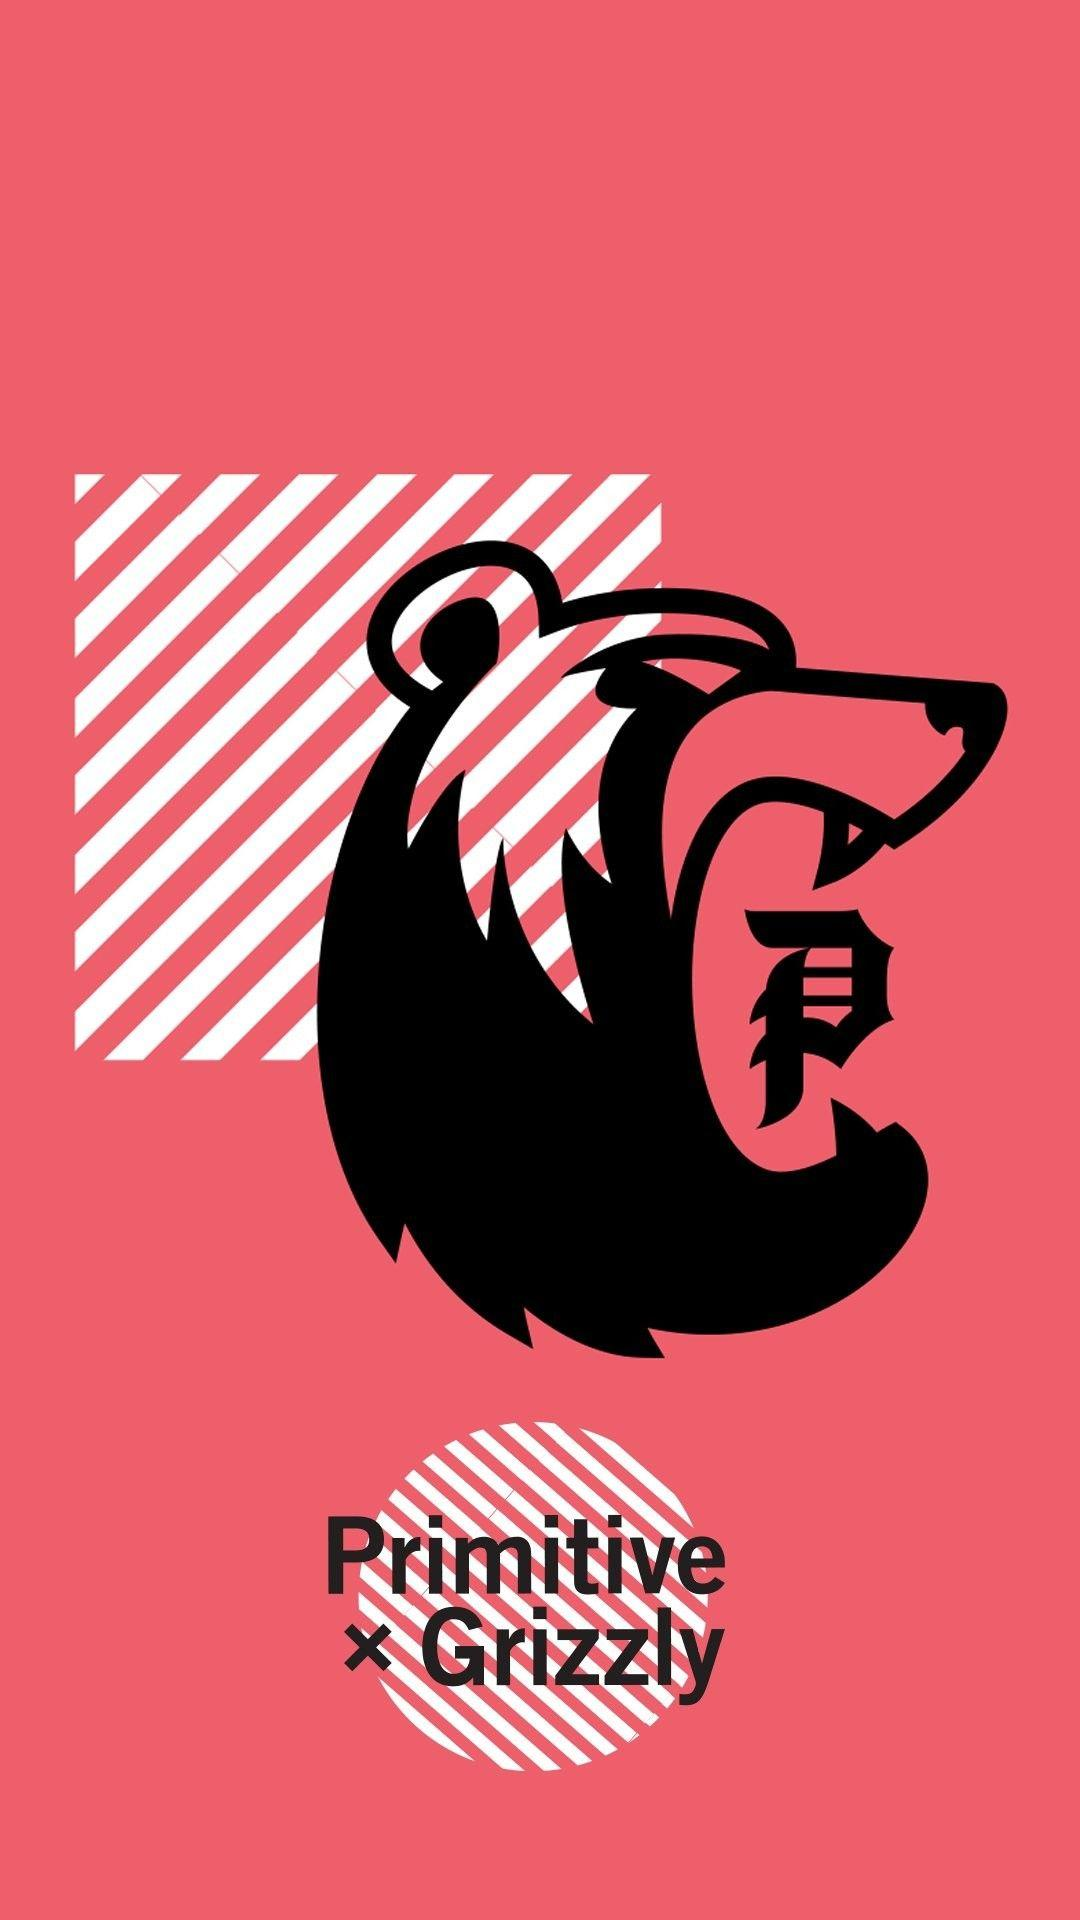 Grizzly Logo Skate Wallpapers Wallpaper Cave